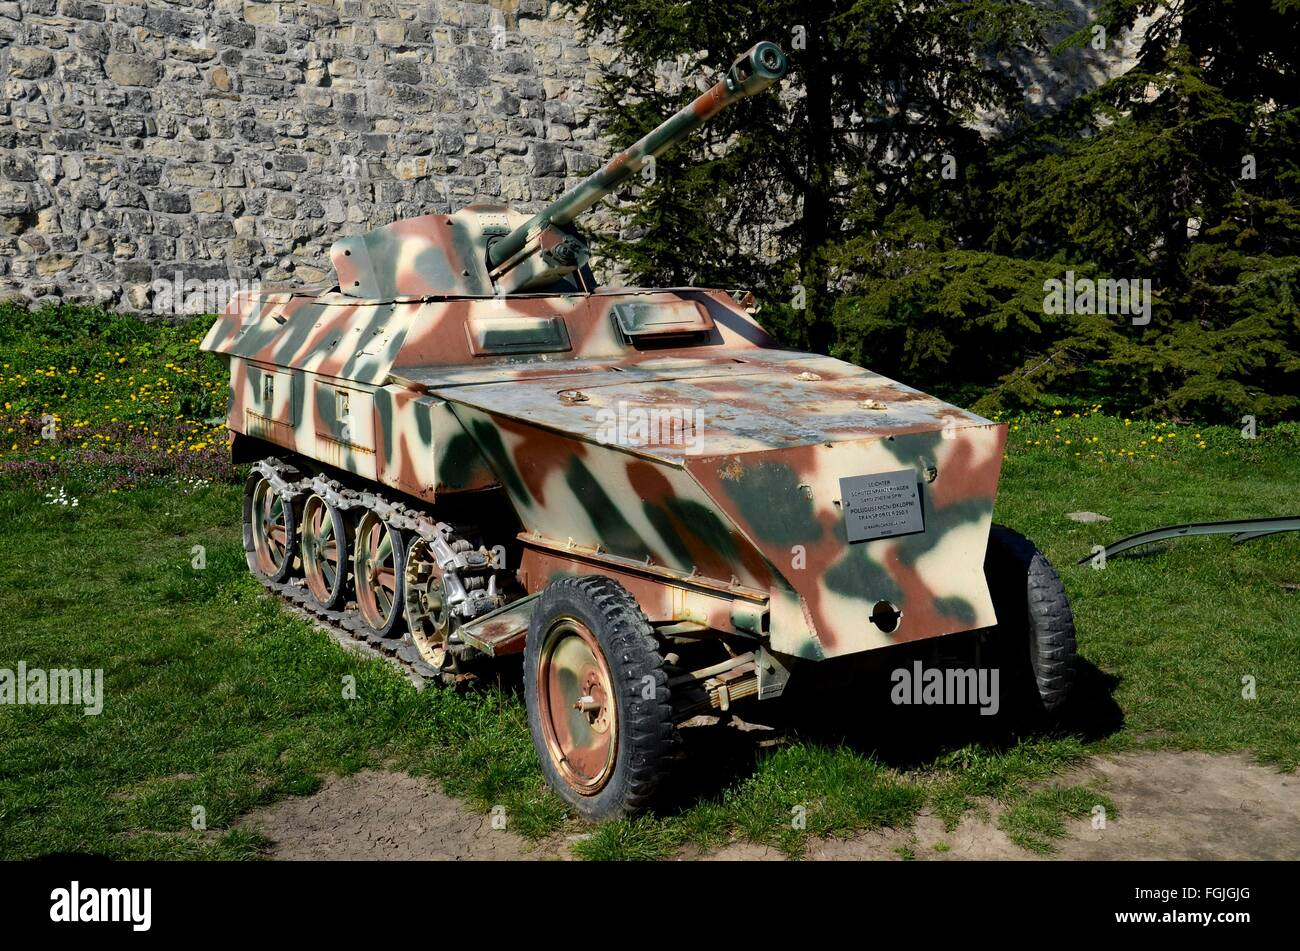 German built armored half-track troop carrier with cannon gun from World War Two Sd. Kfz 250 in Belgrade Serbia - Stock Image